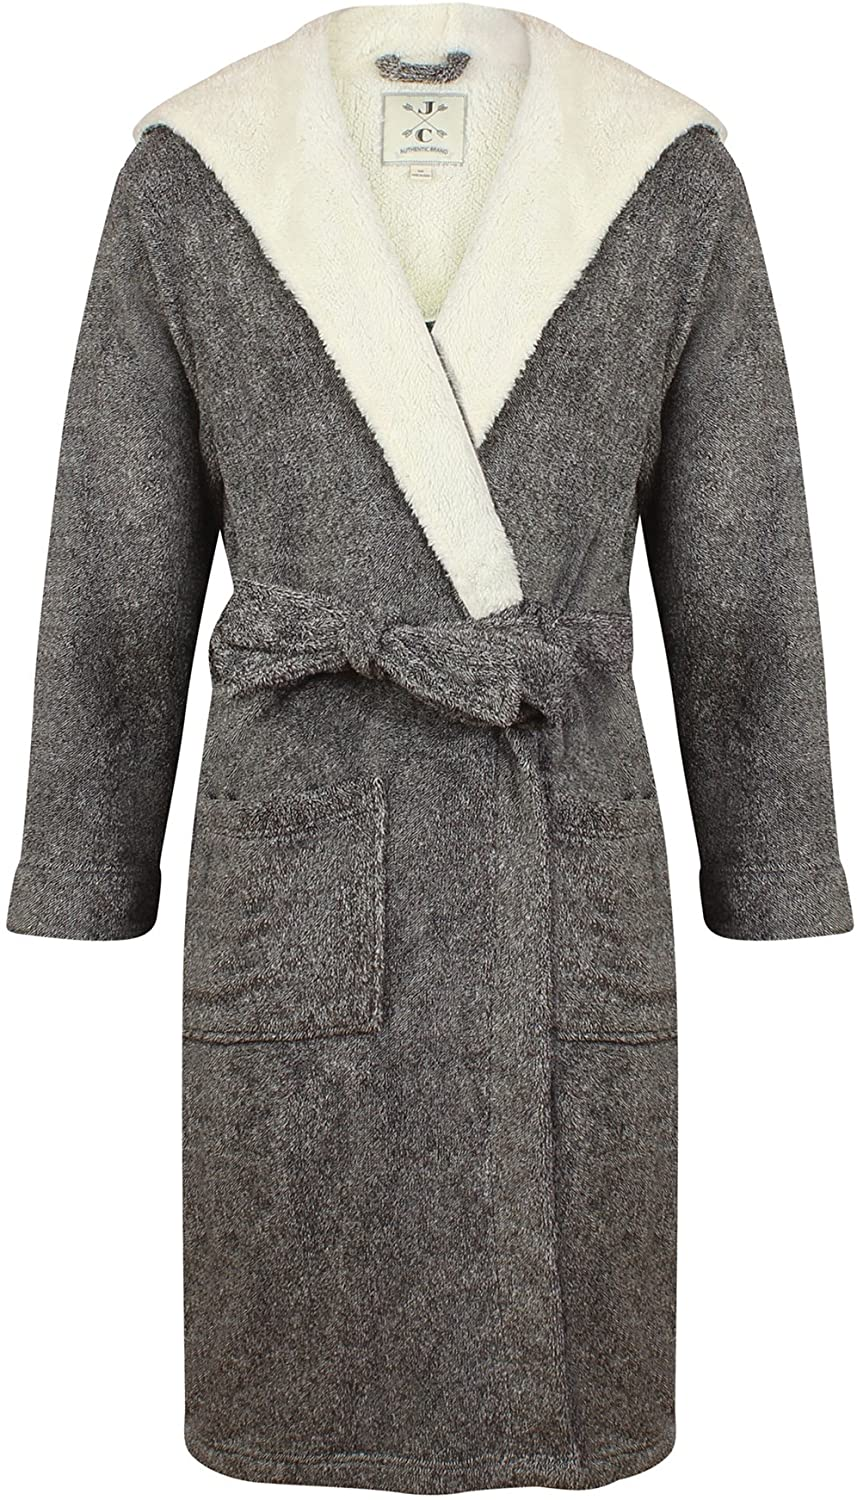 John Christian Men's Hooded Fleece Robe, Dark Gray Marl